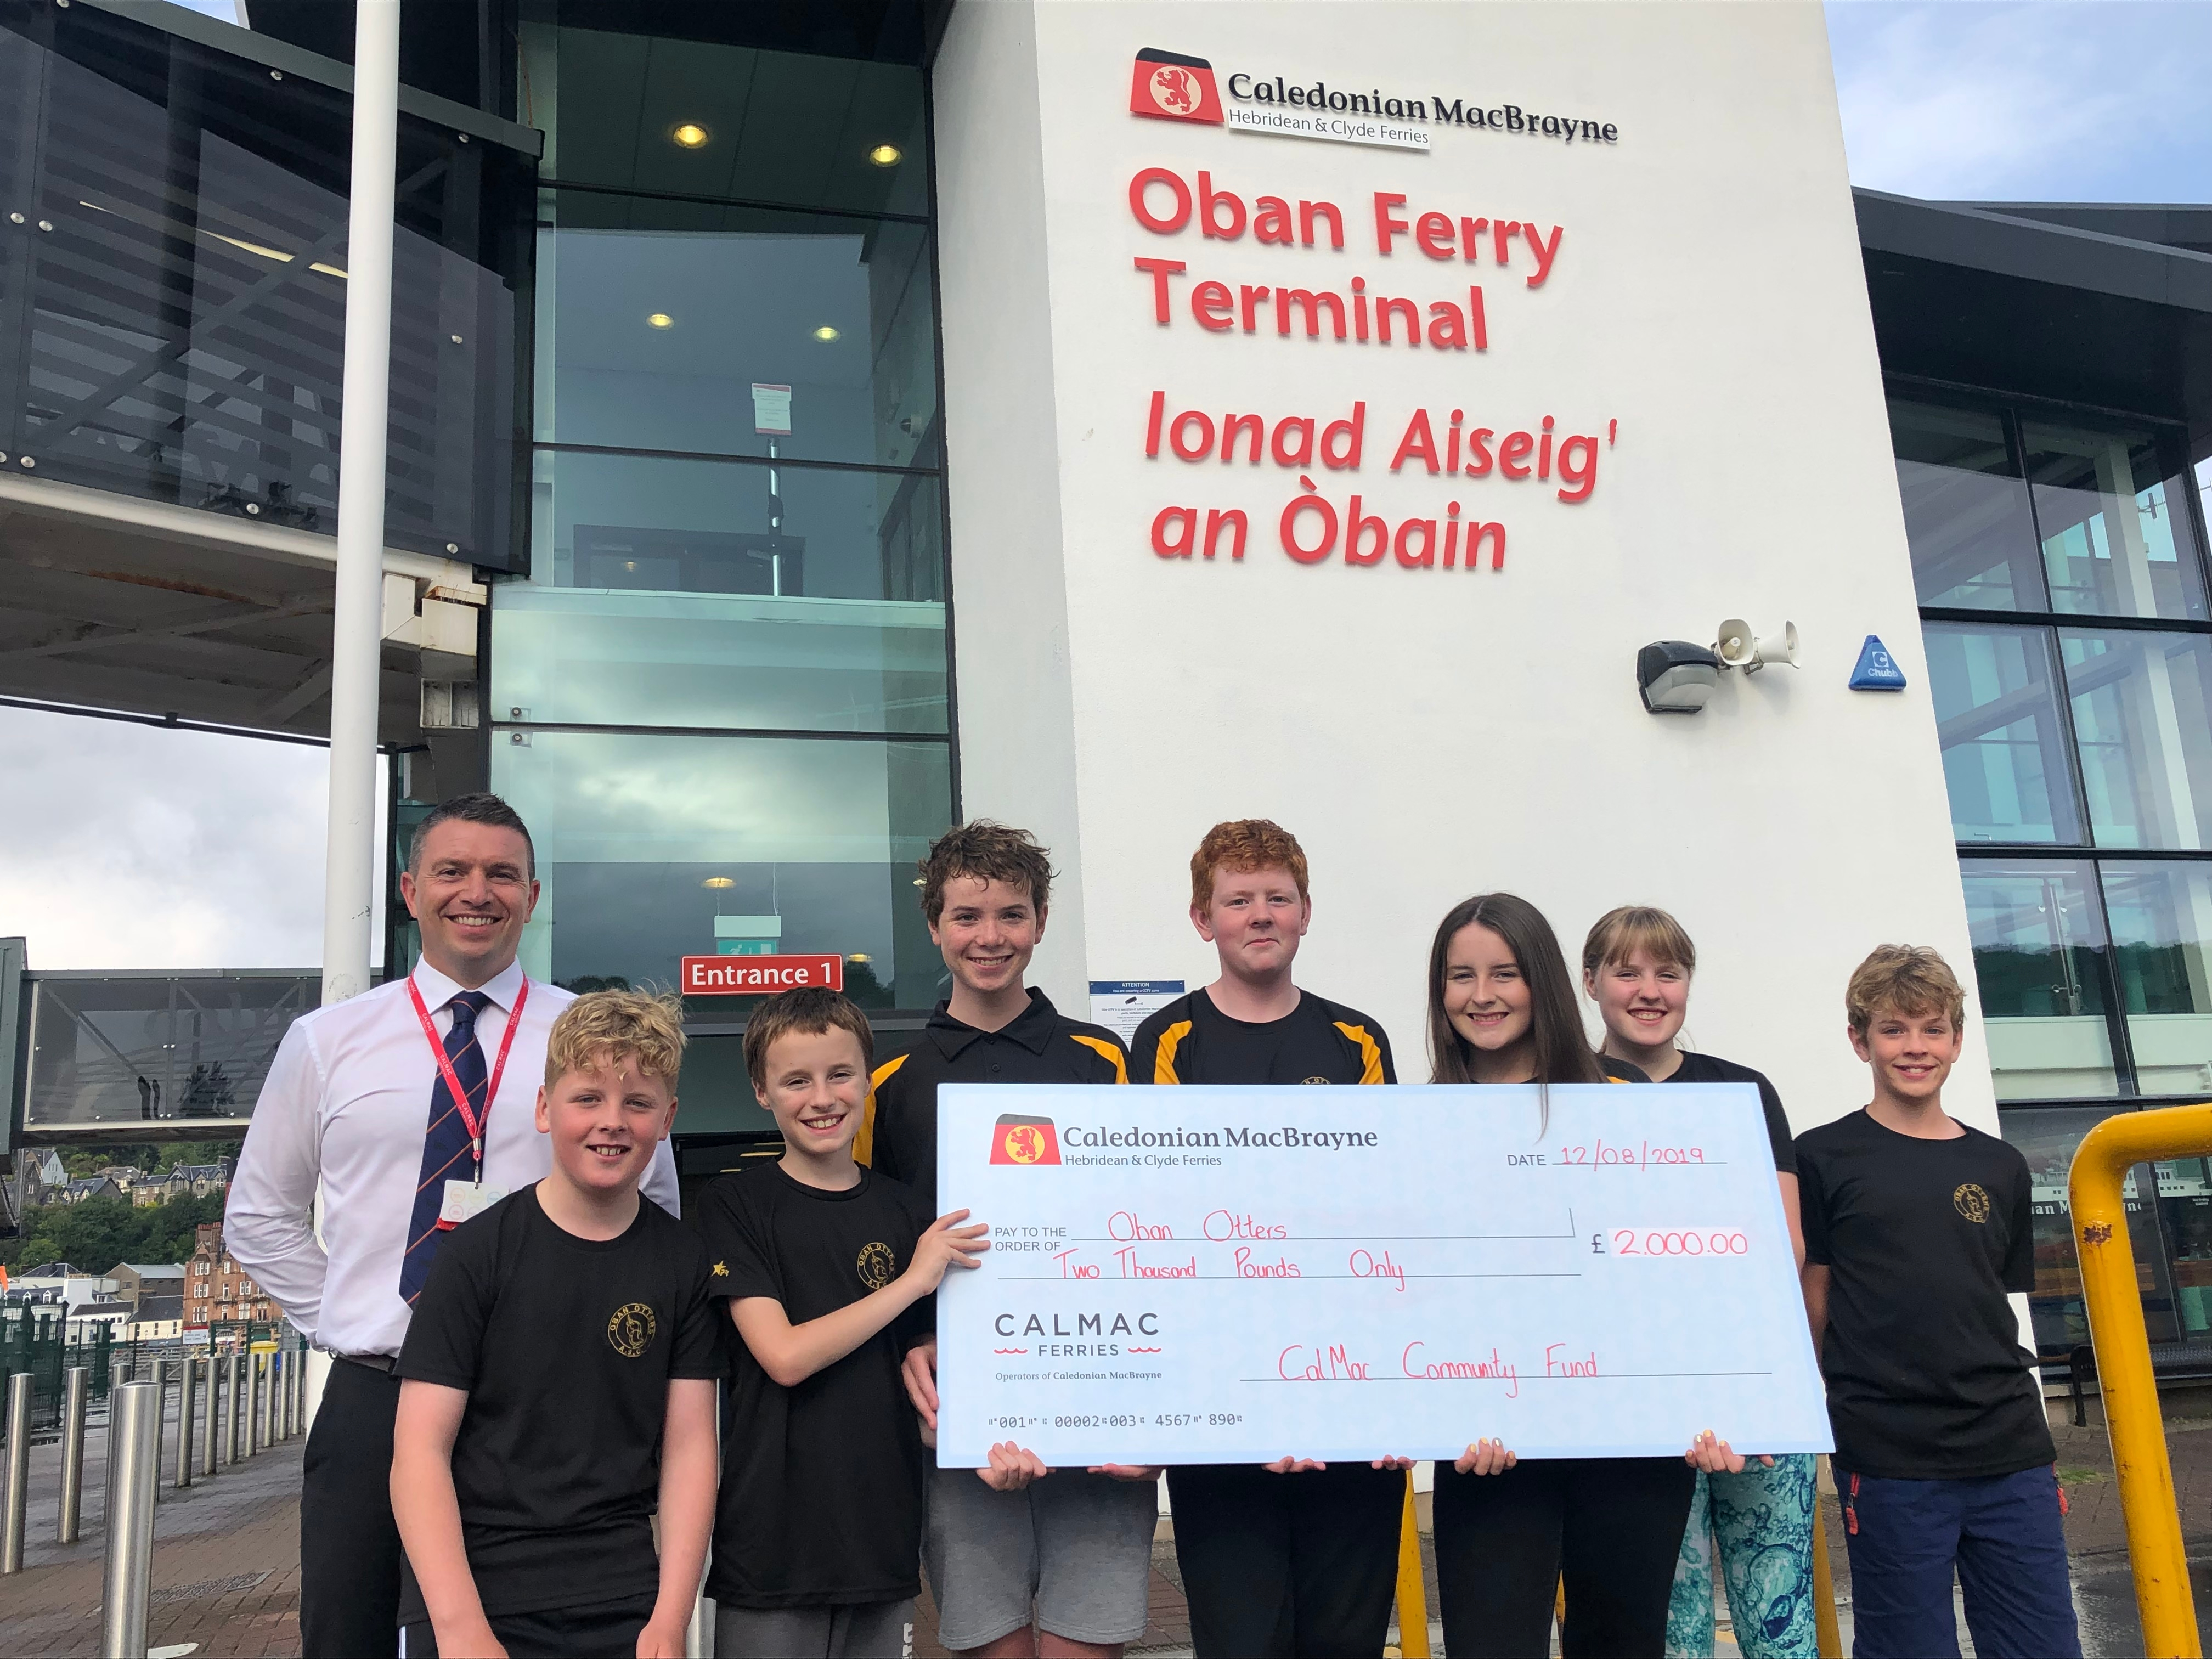 Oban Otters Amateur Swimming Club in support of their CalMac Swim Challenge 2019 project